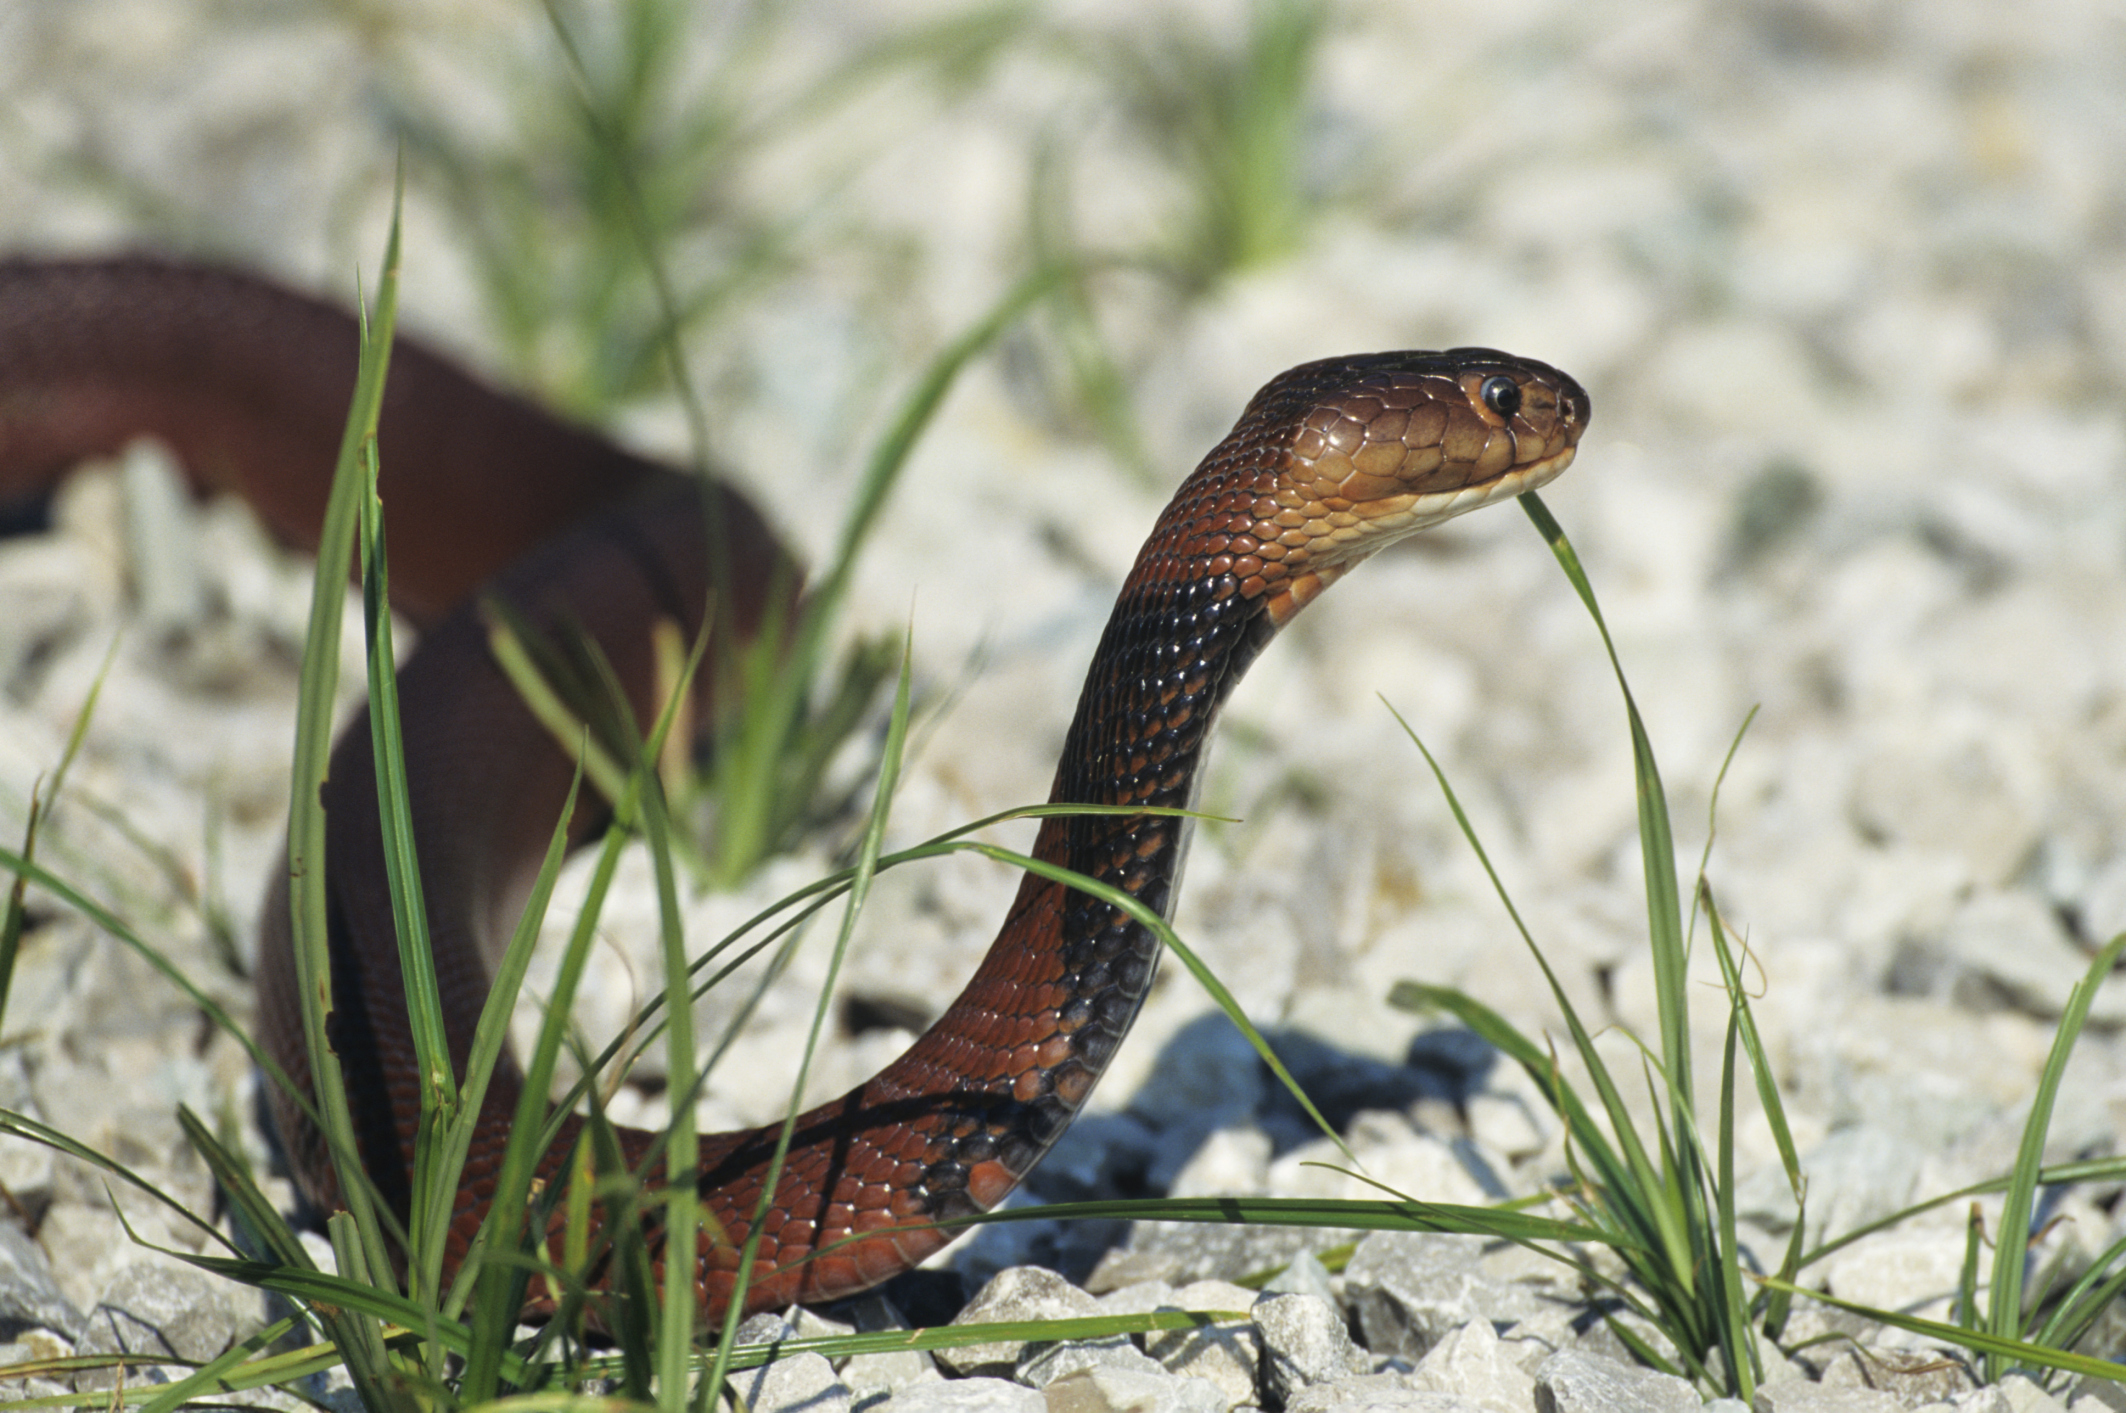 What Are Three Adaptations That Reptiles Have for Conserving